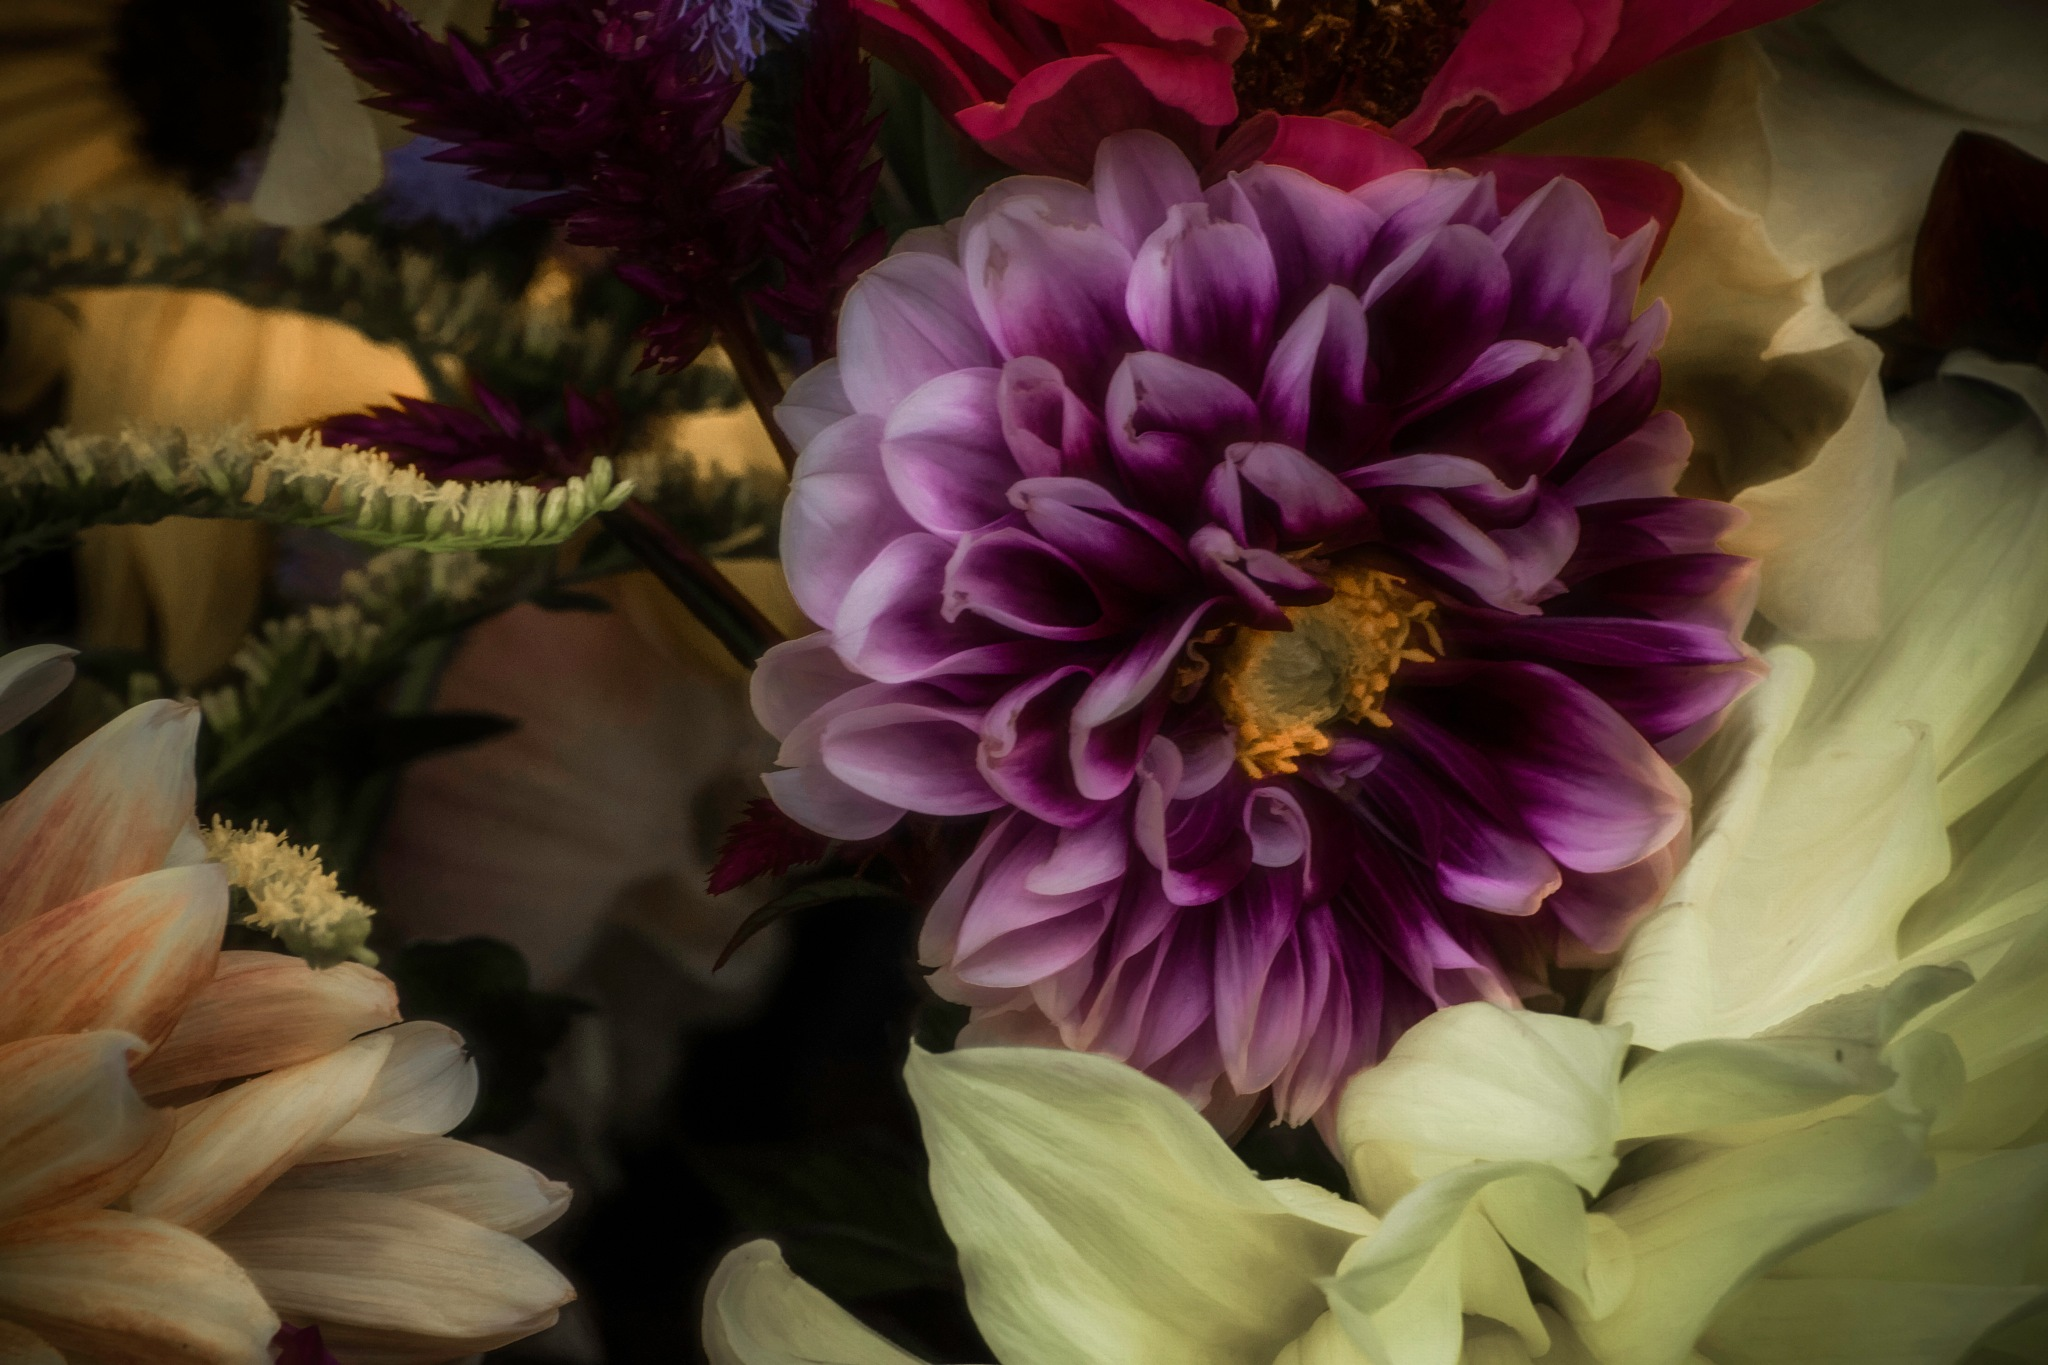 Flowers 9-2-45 by JohnEllingson